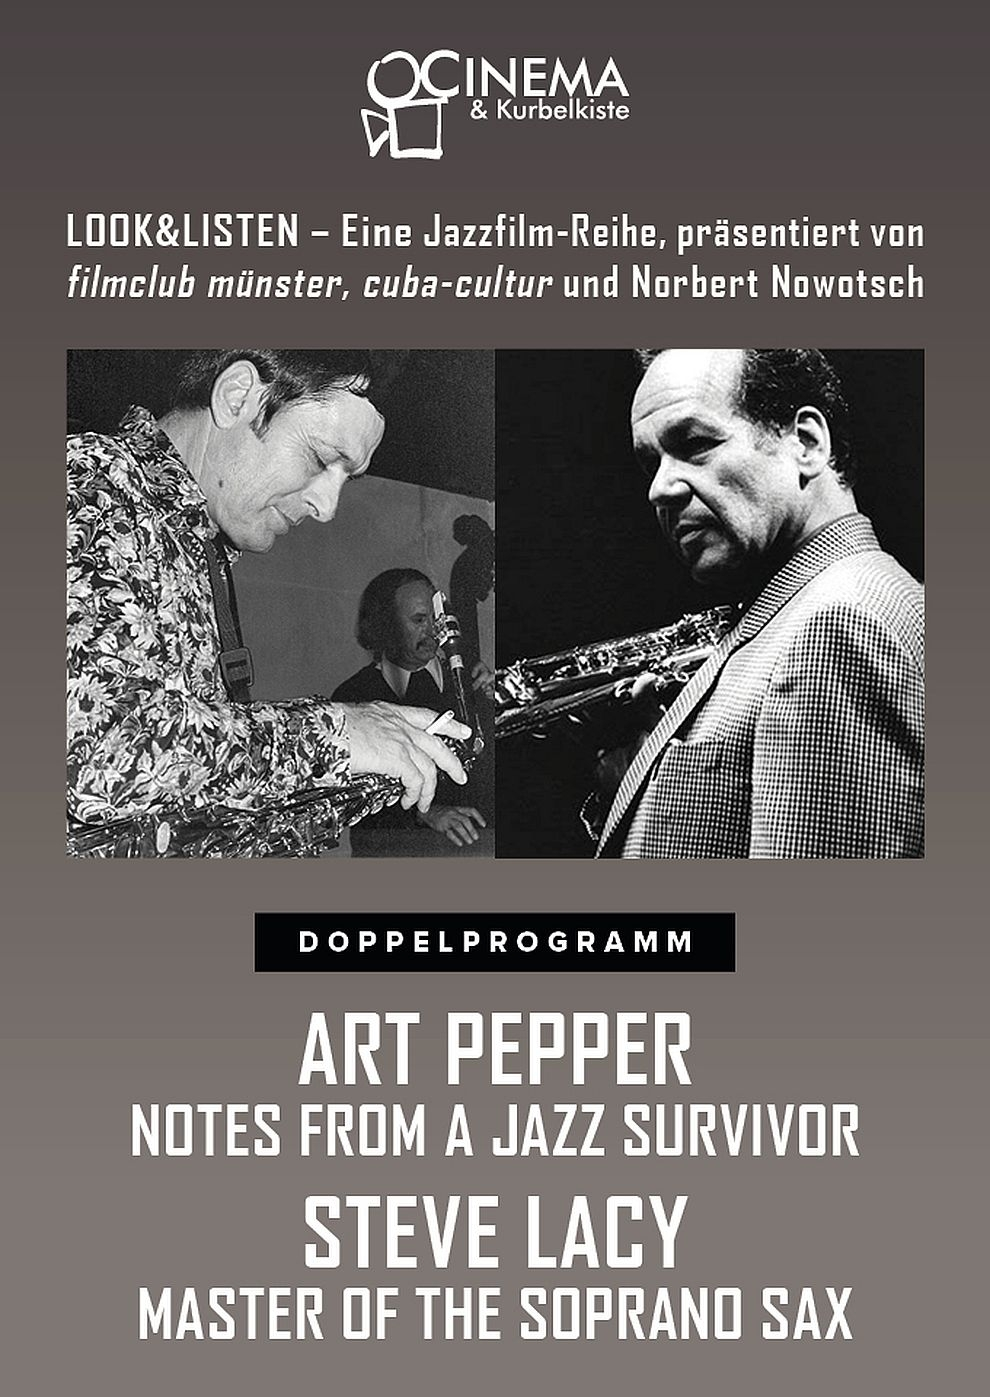 Art Pepper: Notes from a Jazz Survivor & Steve Lacy: Master of the Soprano Sax (Poster)